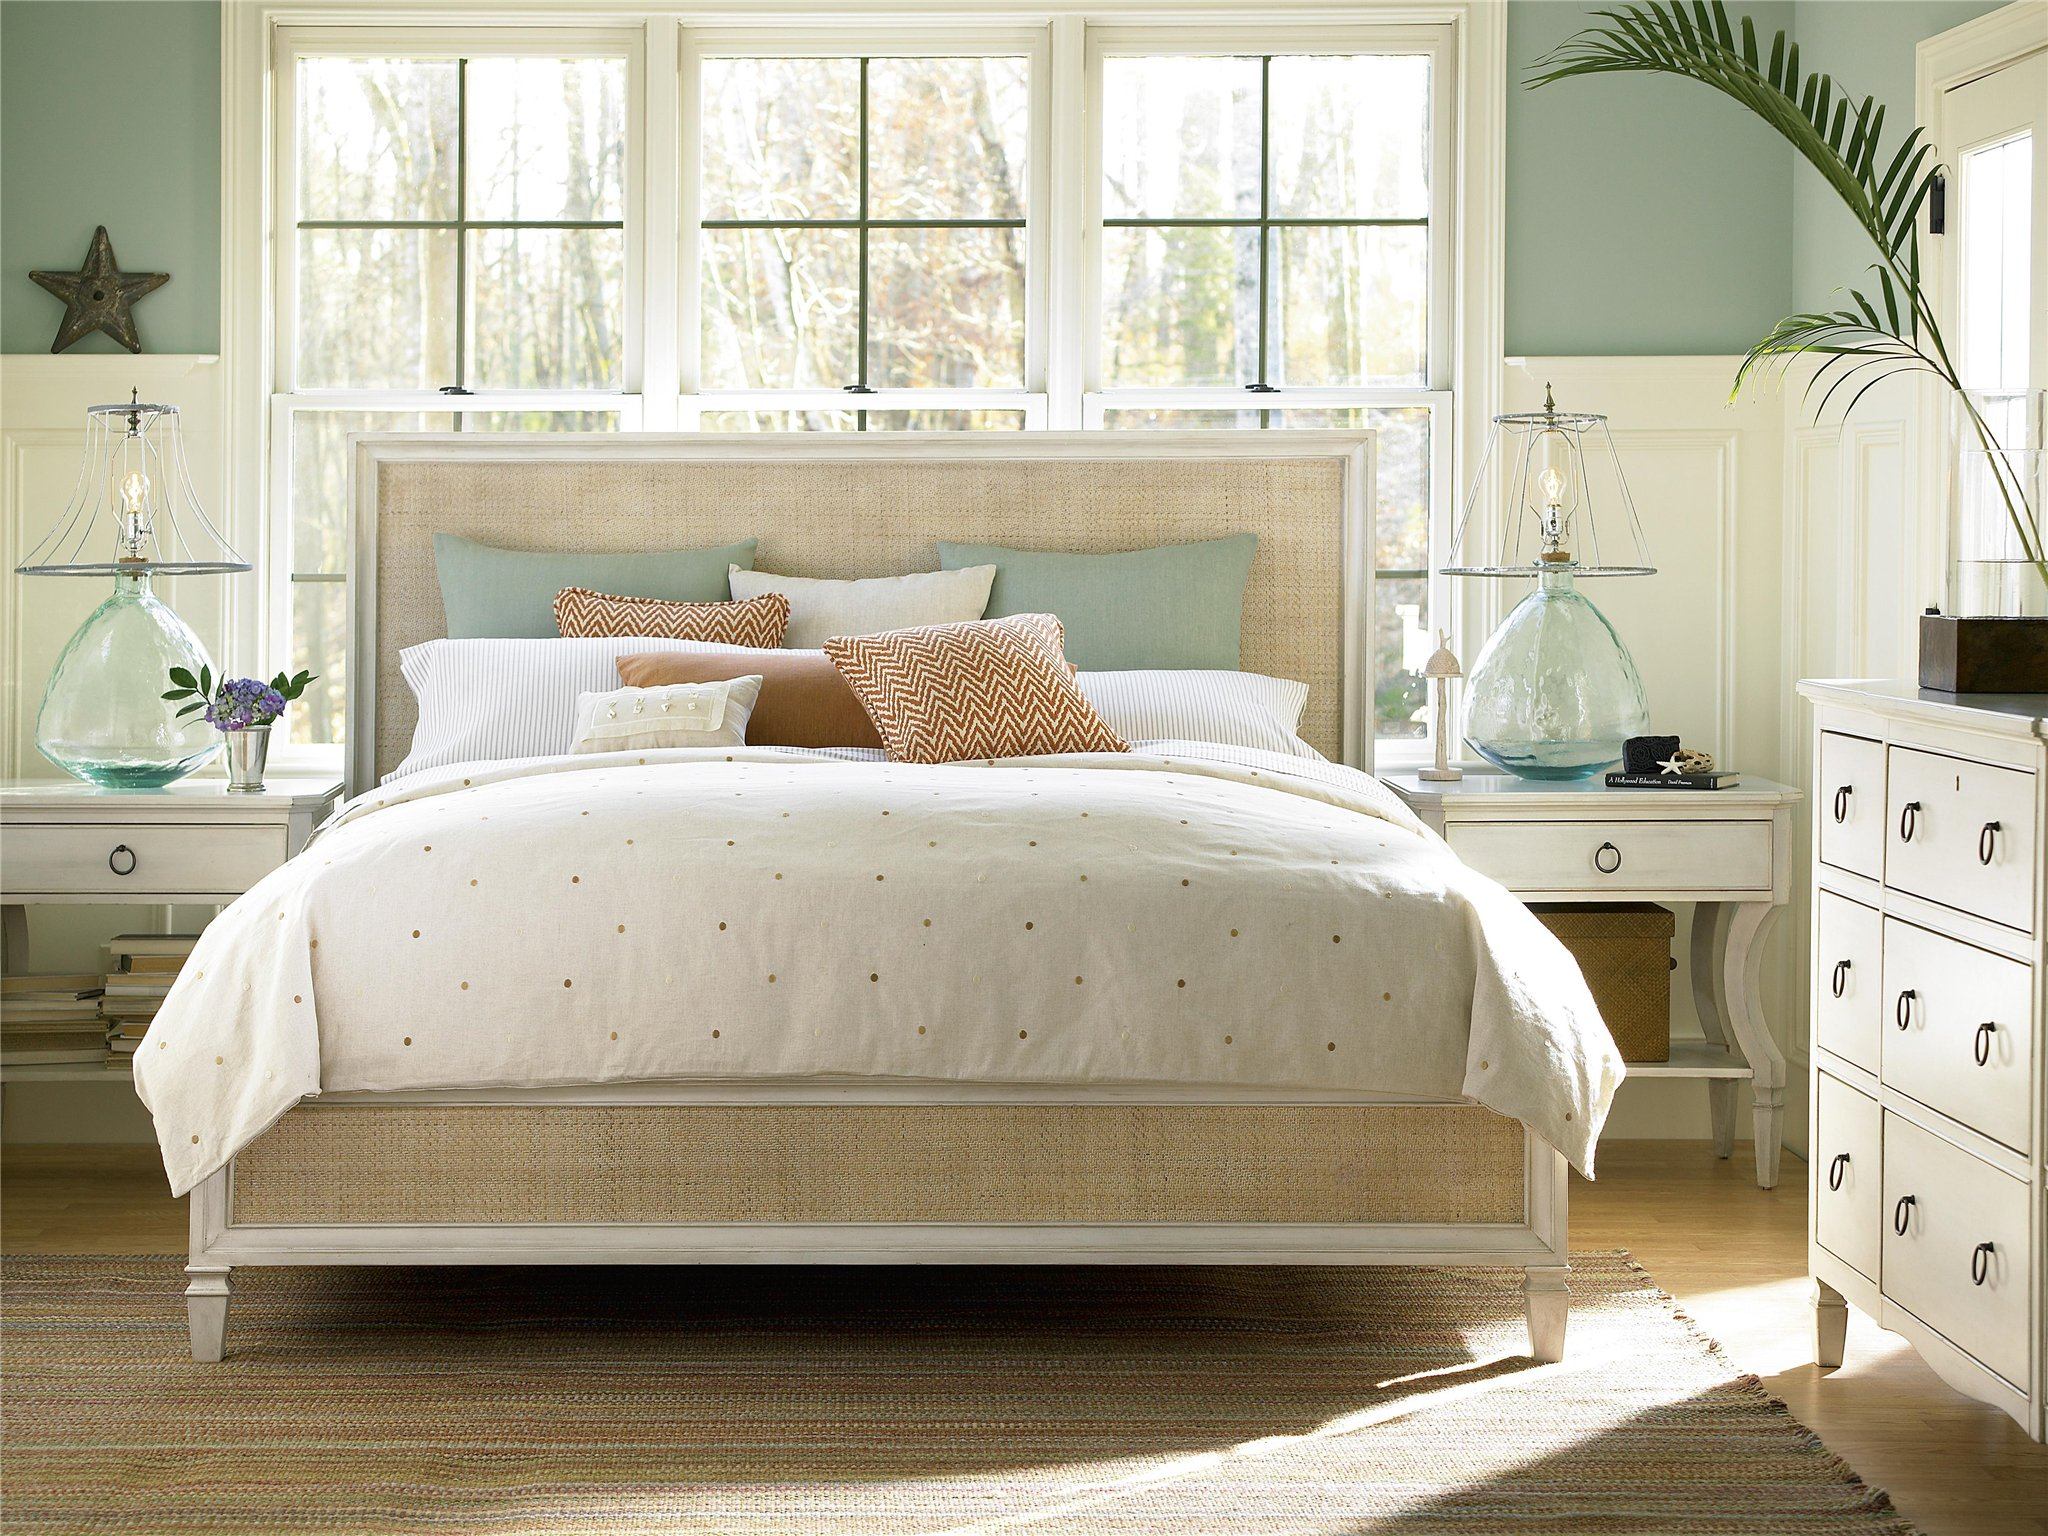 Woven Accent Cal King Bed